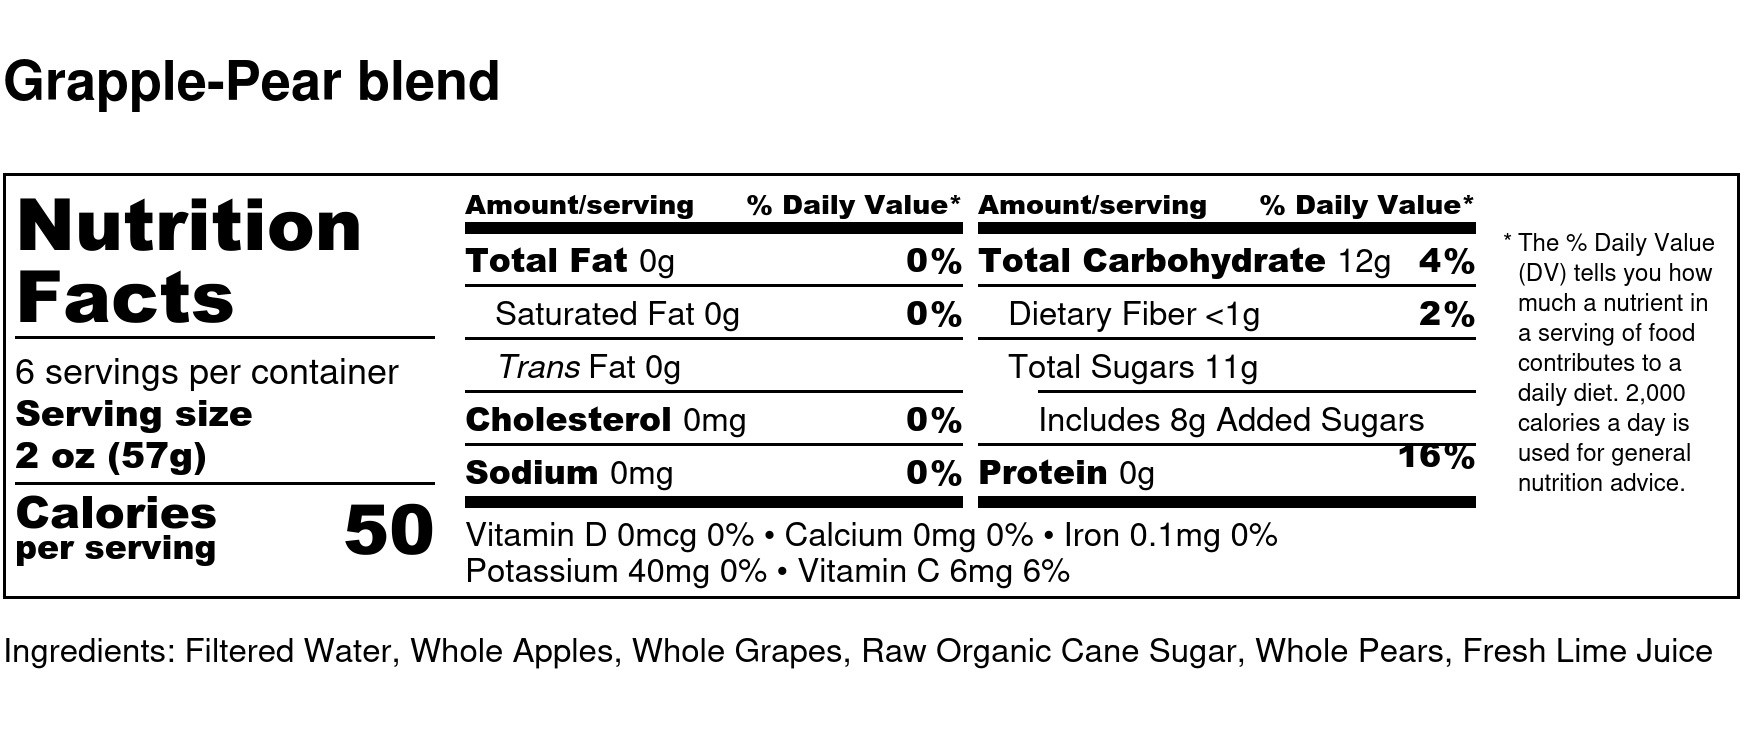 Grapple-Pear blend - Nutrition Label (2)